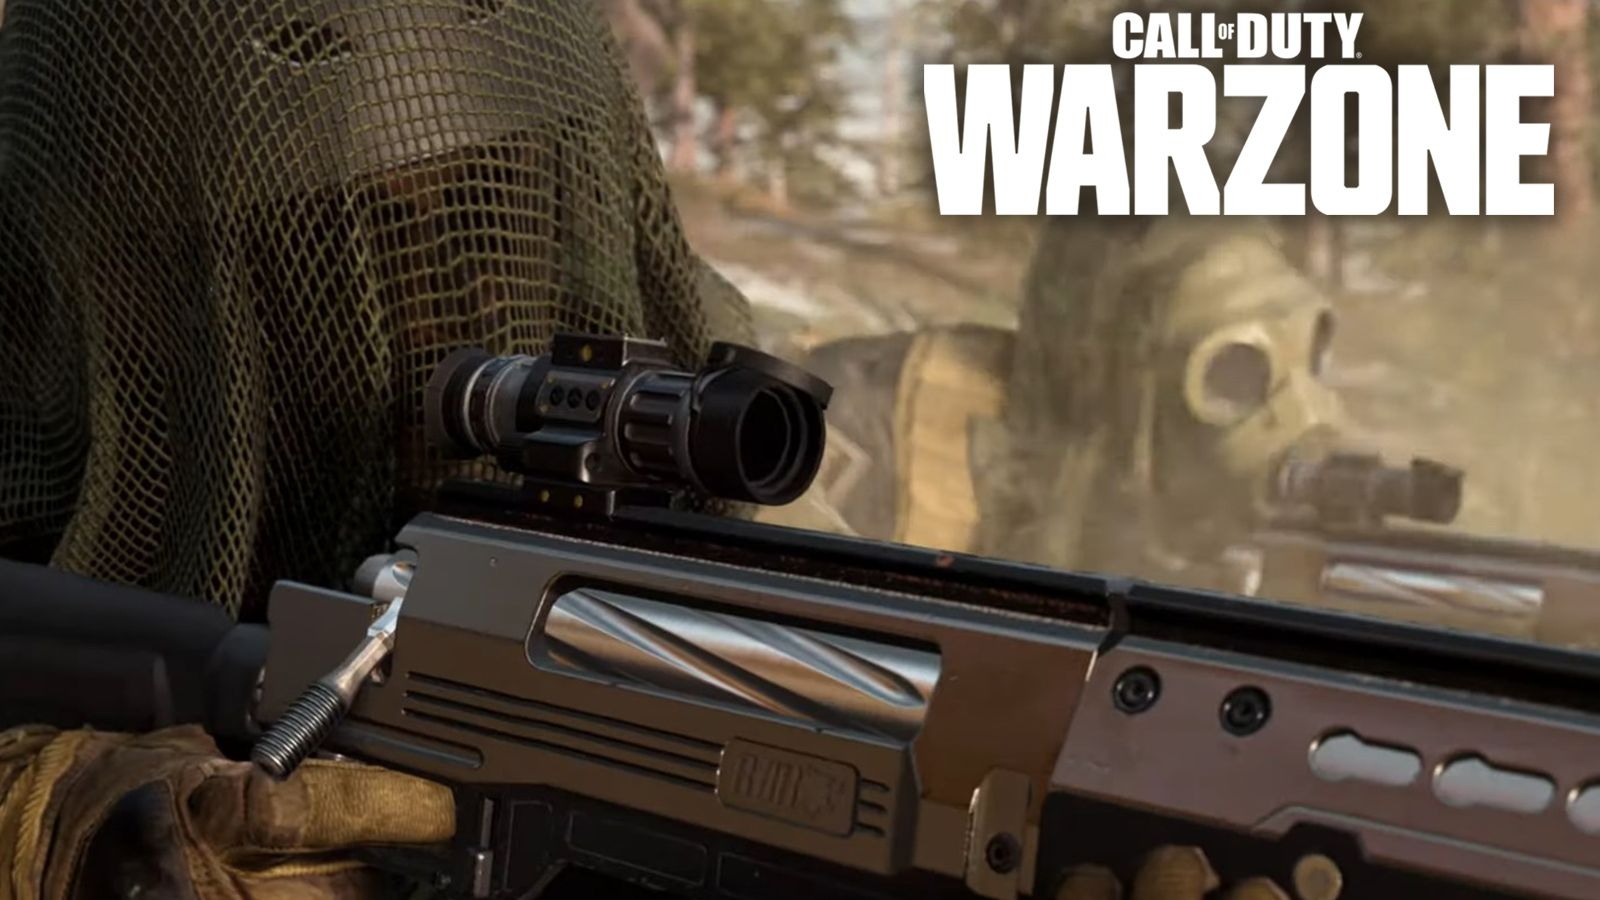 call of duty warzone zoom background